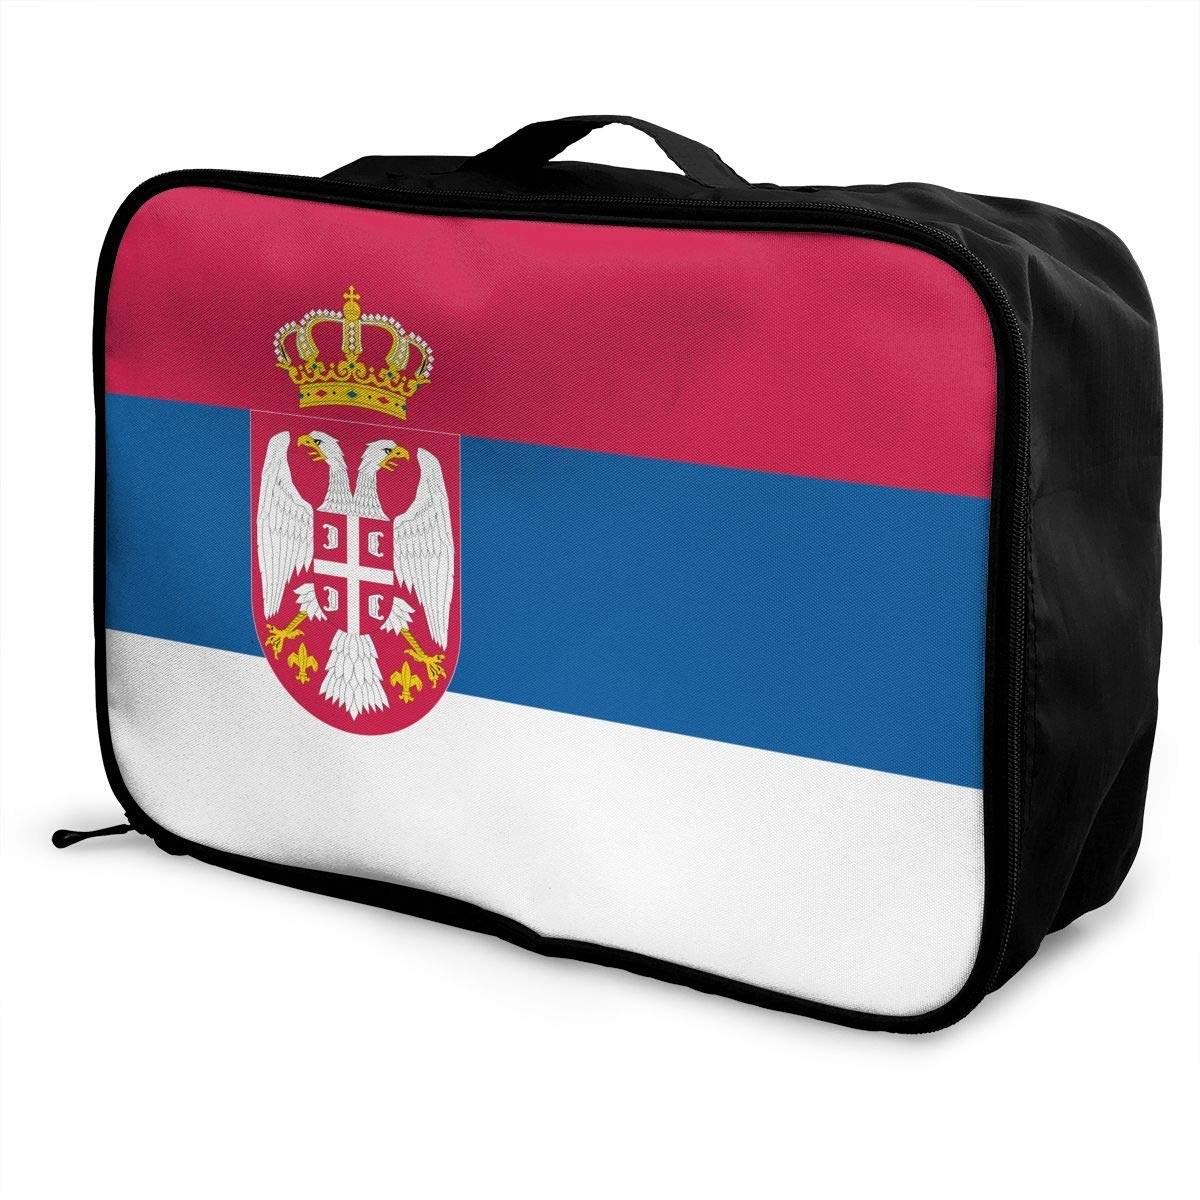 Portable Luggage Duffel Bag Serbia Flag Travel Bags Carry-on In Trolley Handle